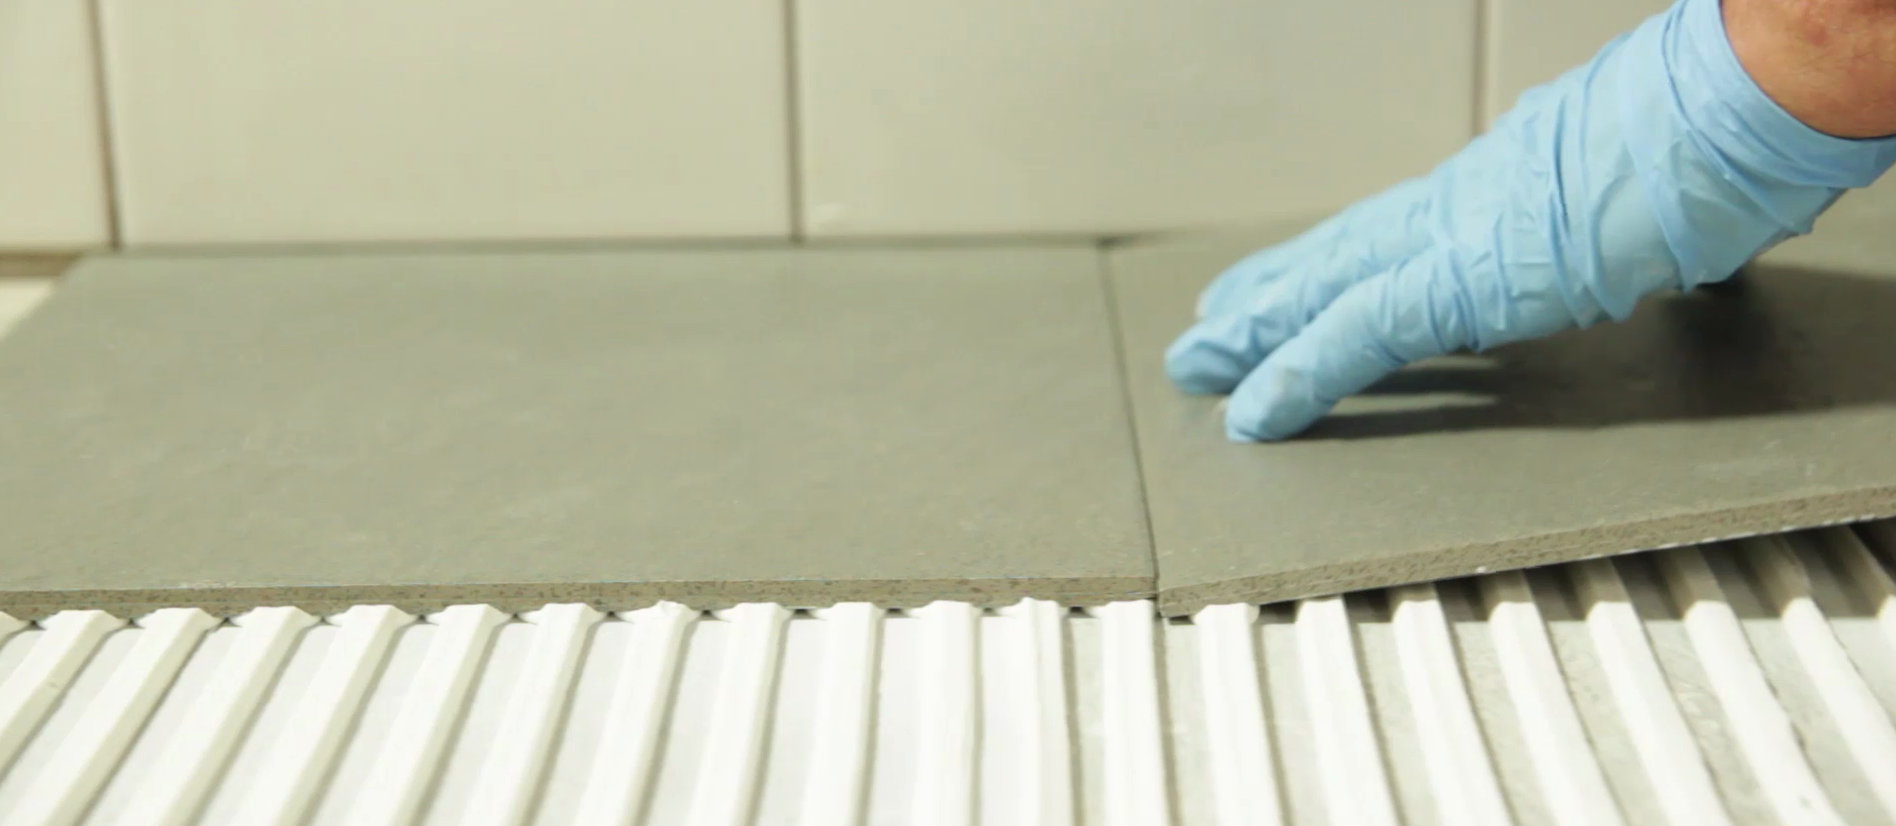 Floor tile bedding mortar products category ardex uk floor tile bedding mortar dailygadgetfo Choice Image